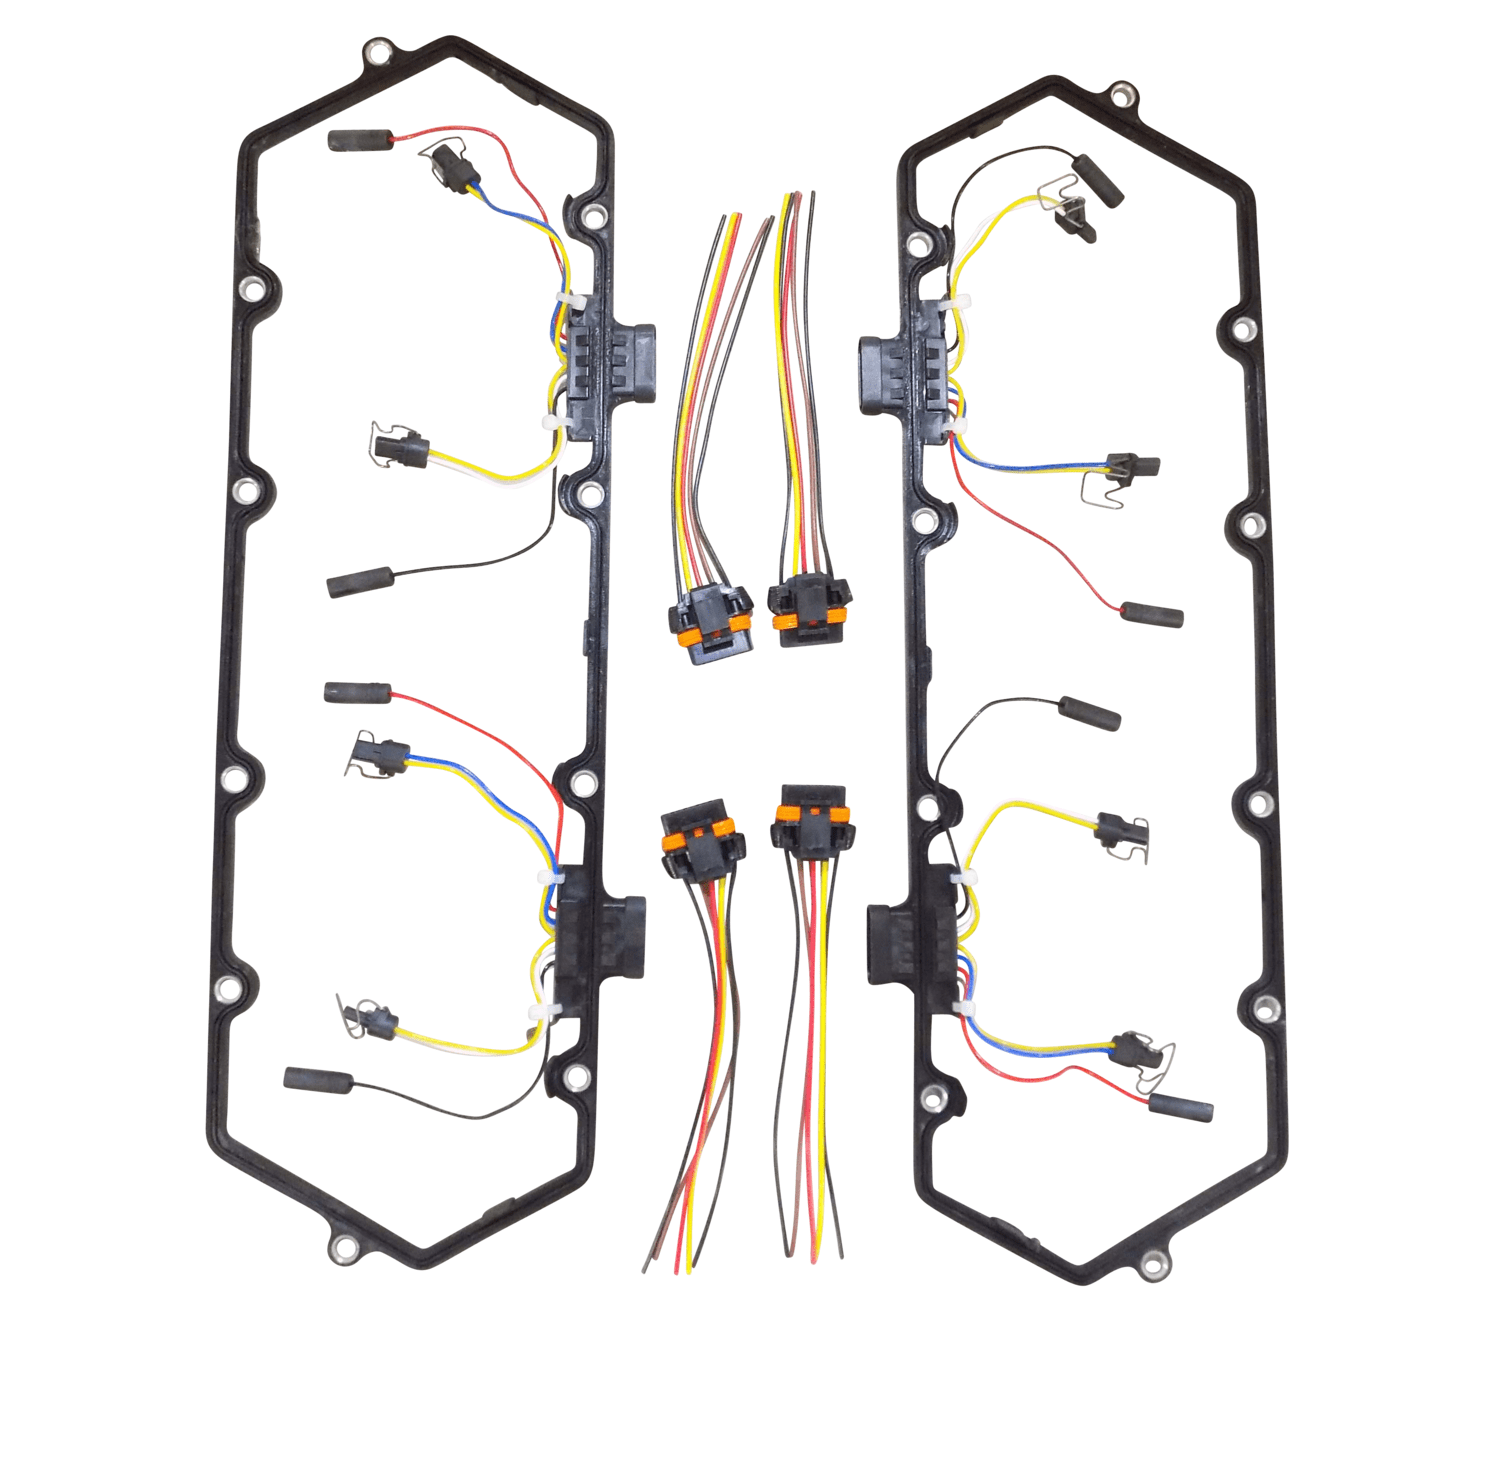 hight resolution of valve cover gasket set wiring pigtail harnesses w connectors 7 3l 1994 97 ford powerstroke